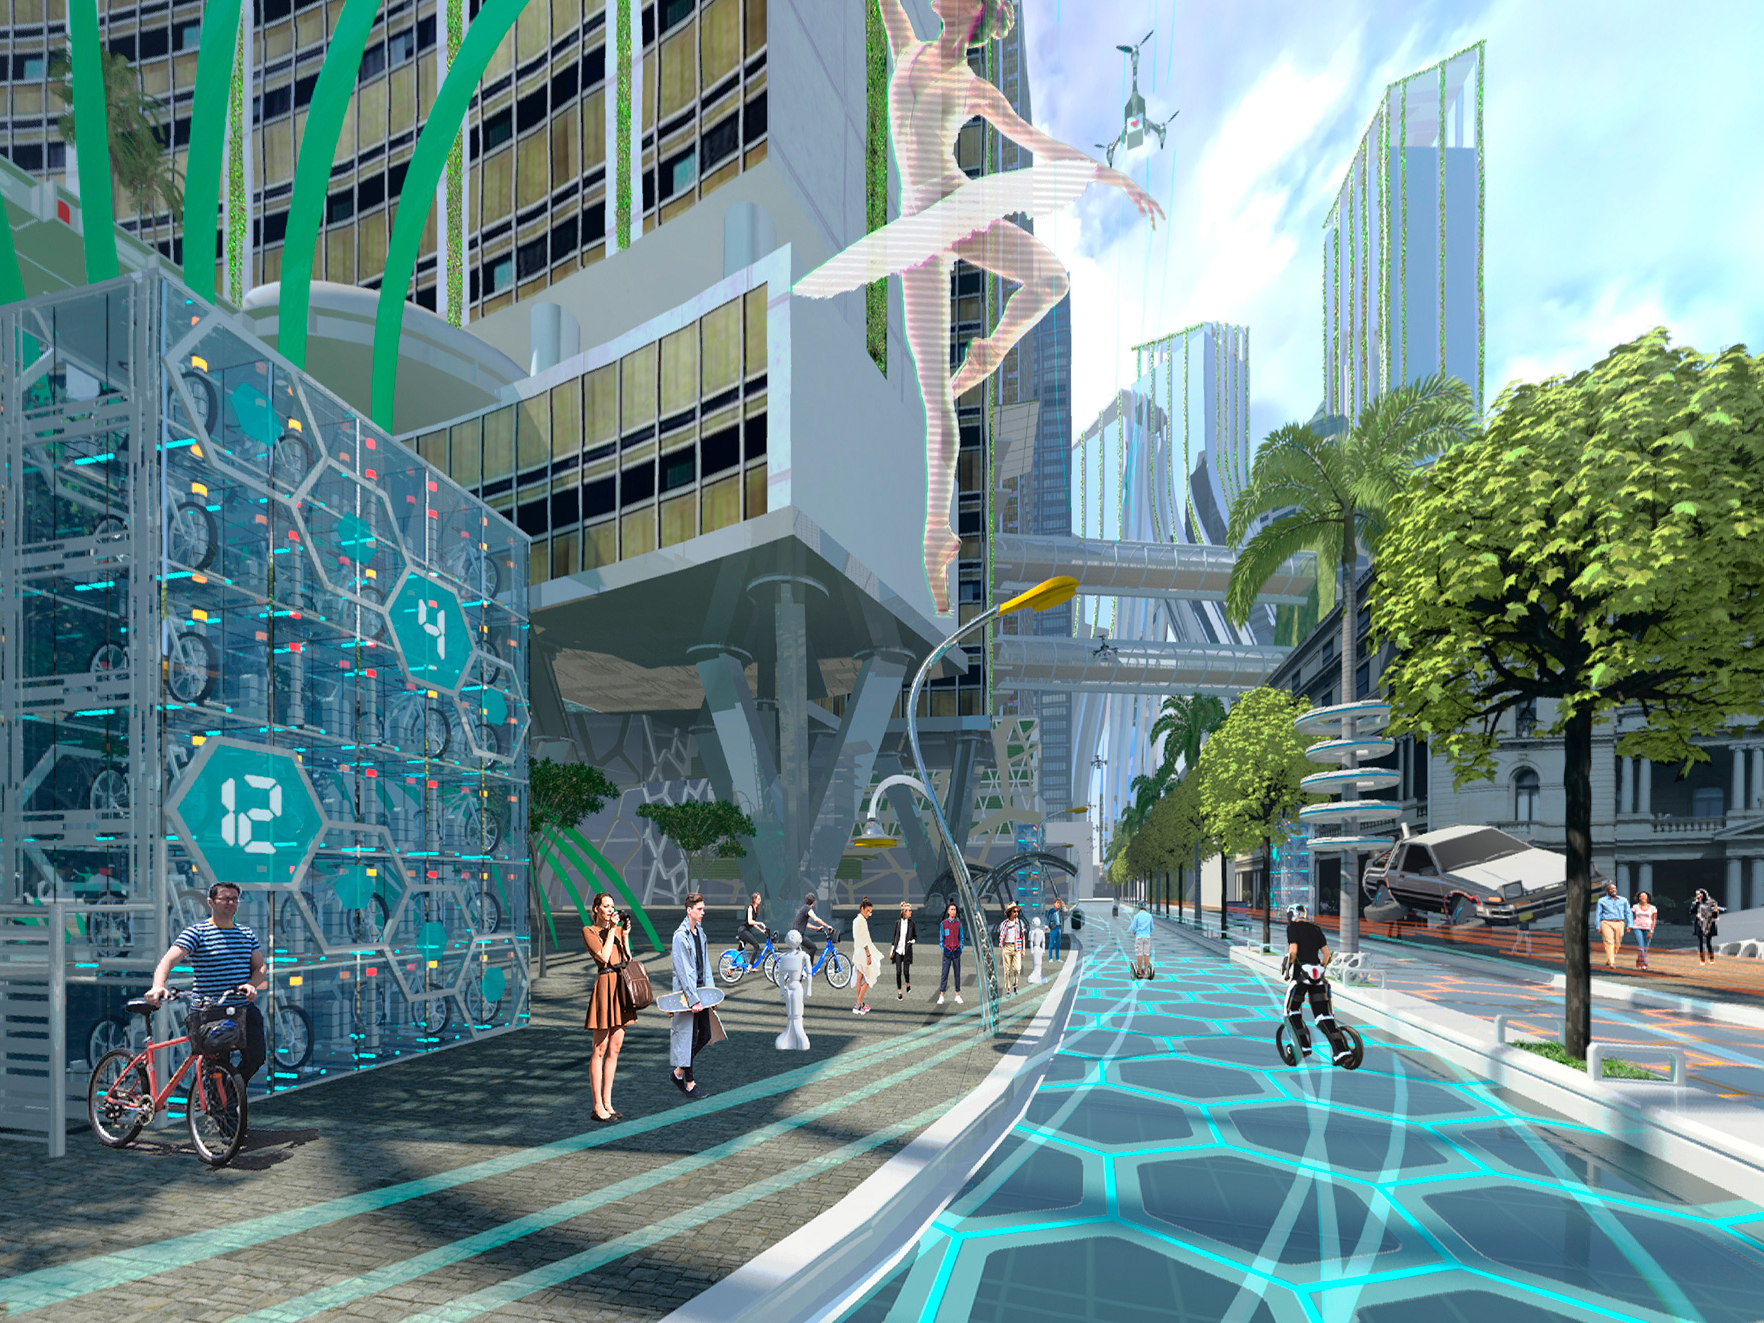 landscape street architecture future futuristic vr hub architects young place designers planners height